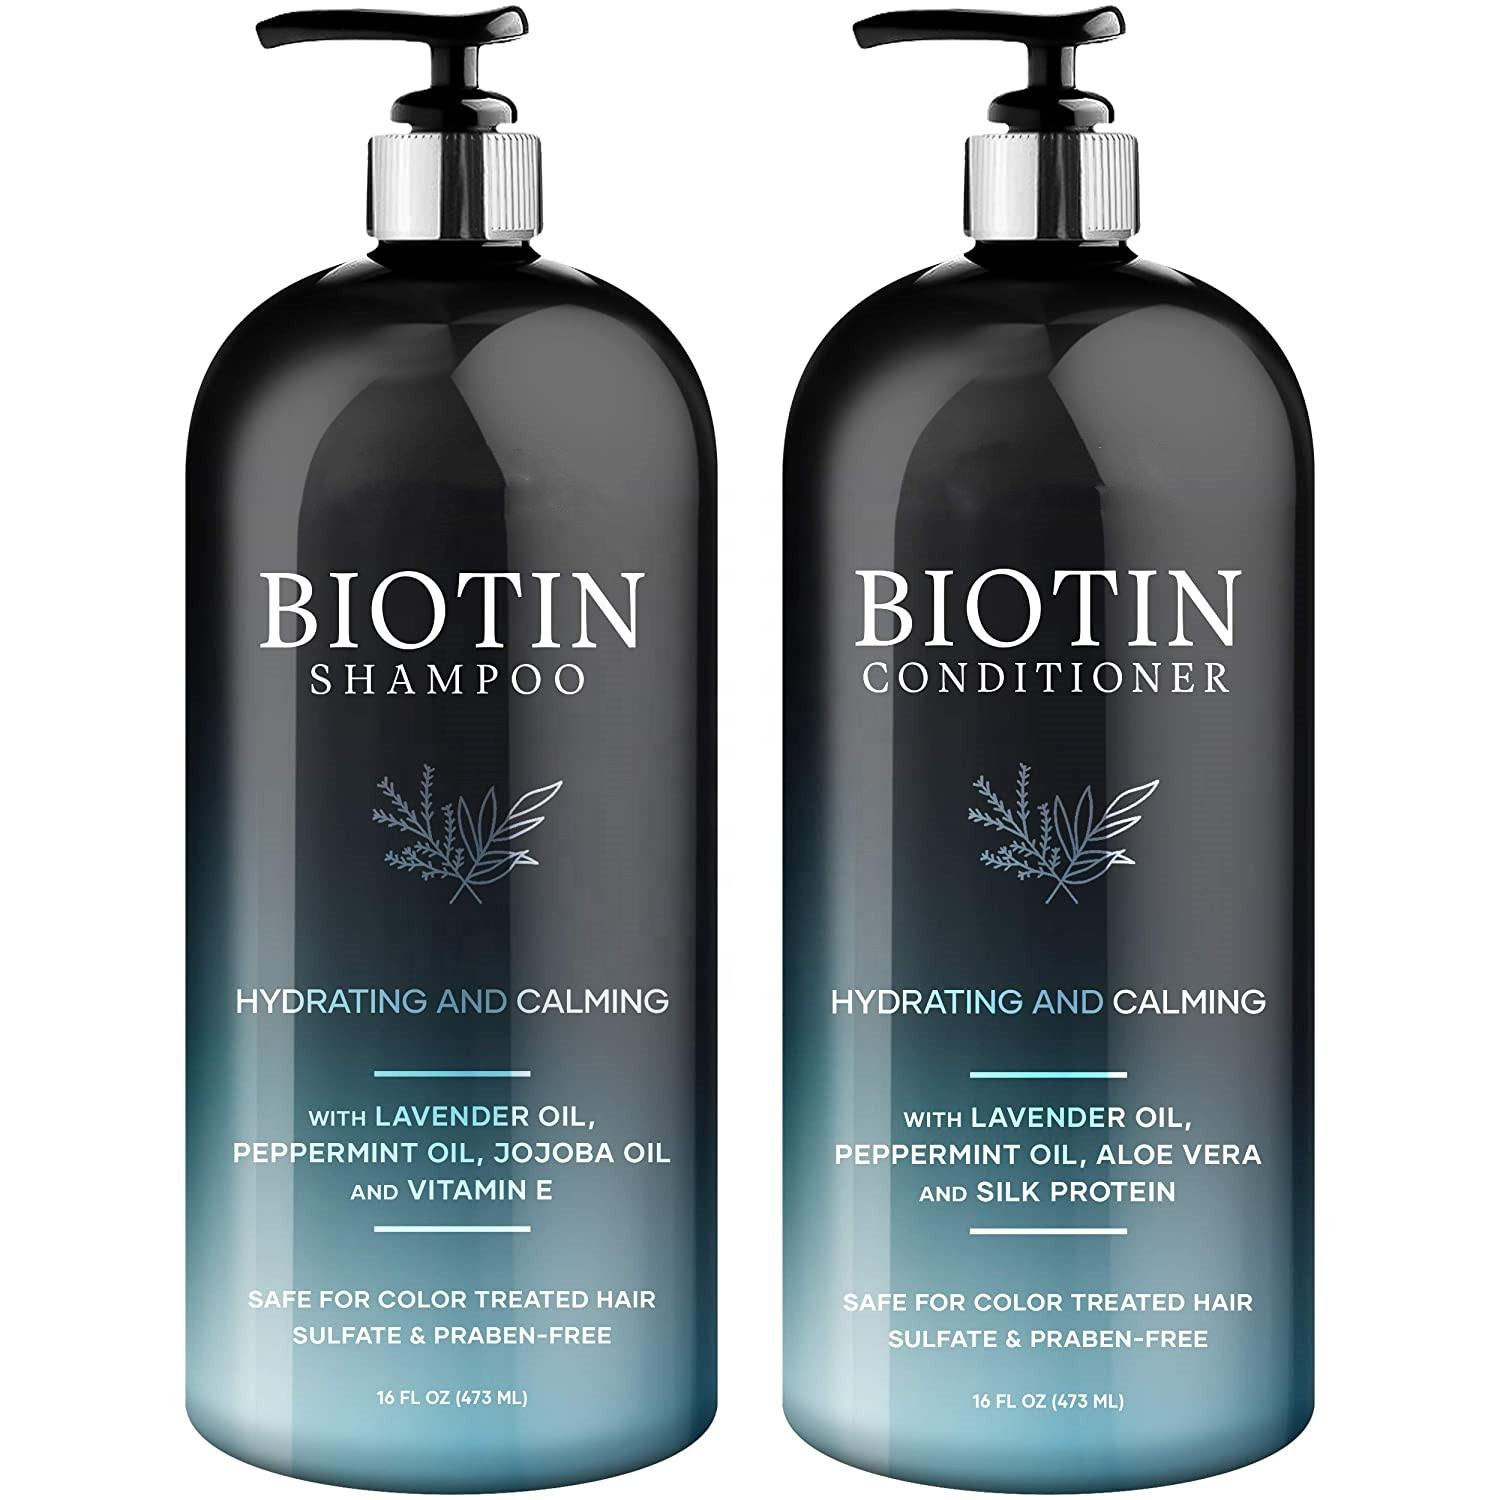 Private Label Hair Biotin Shampoo Best Hair Care Products for Blonde Hair Treatment Shampoo